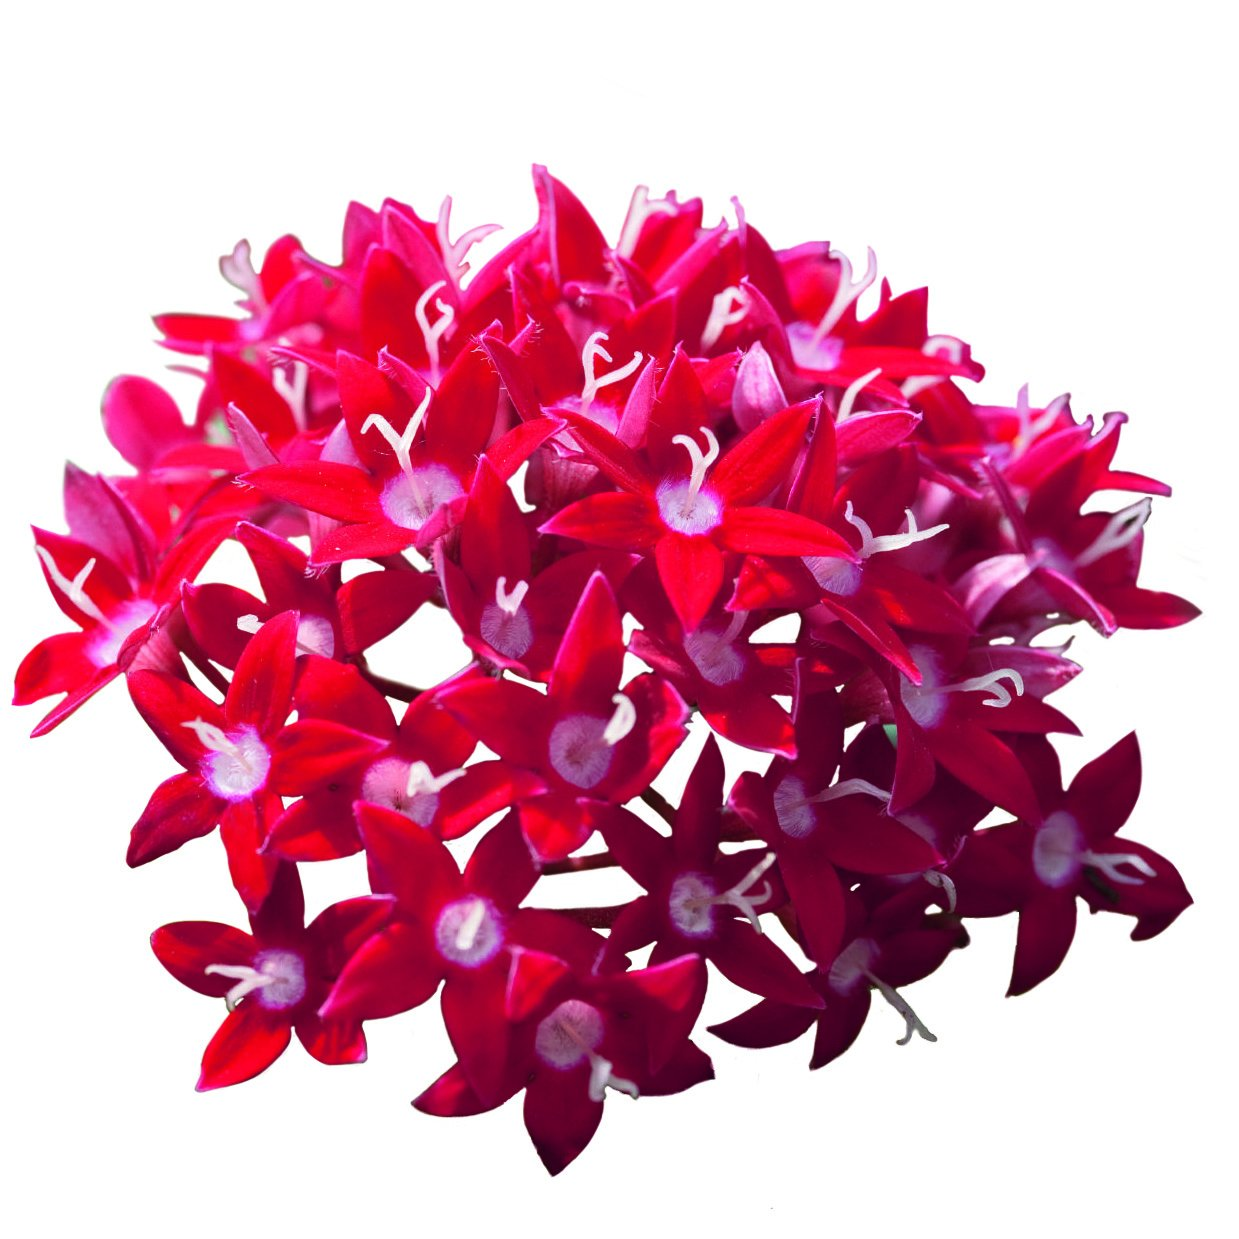 Costa Farms Live Flowering Pentas, Outdoor Plant in 1.00 qt Grower Pot, Bright Red, 8 pack by Costa Farms